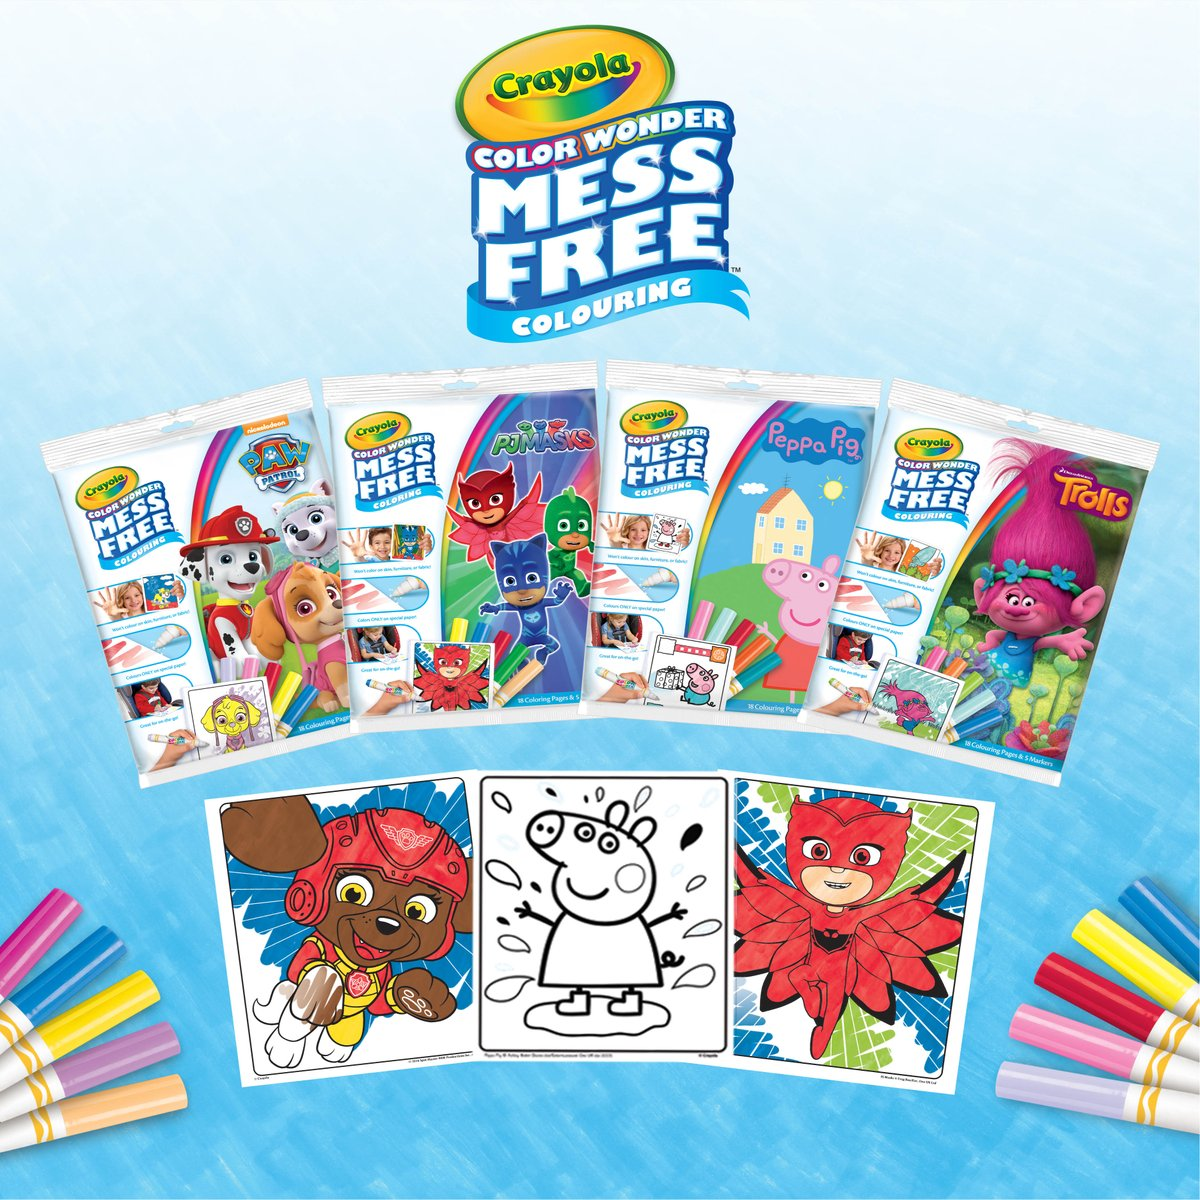 #Win a #Crayola Color Wonder Bundle worth £28  Enter DAILY   http:// ow.ly/P2Y230jpAn6  &nbsp;    @Crayola #Pawpatrol #PeppaPig #PJMasks #Trolls #colouring #colour #creative #art #kids #activity #prizedraw #giveaway #competition #dailyclicktowin<br>http://pic.twitter.com/Fxt1jA2hHS